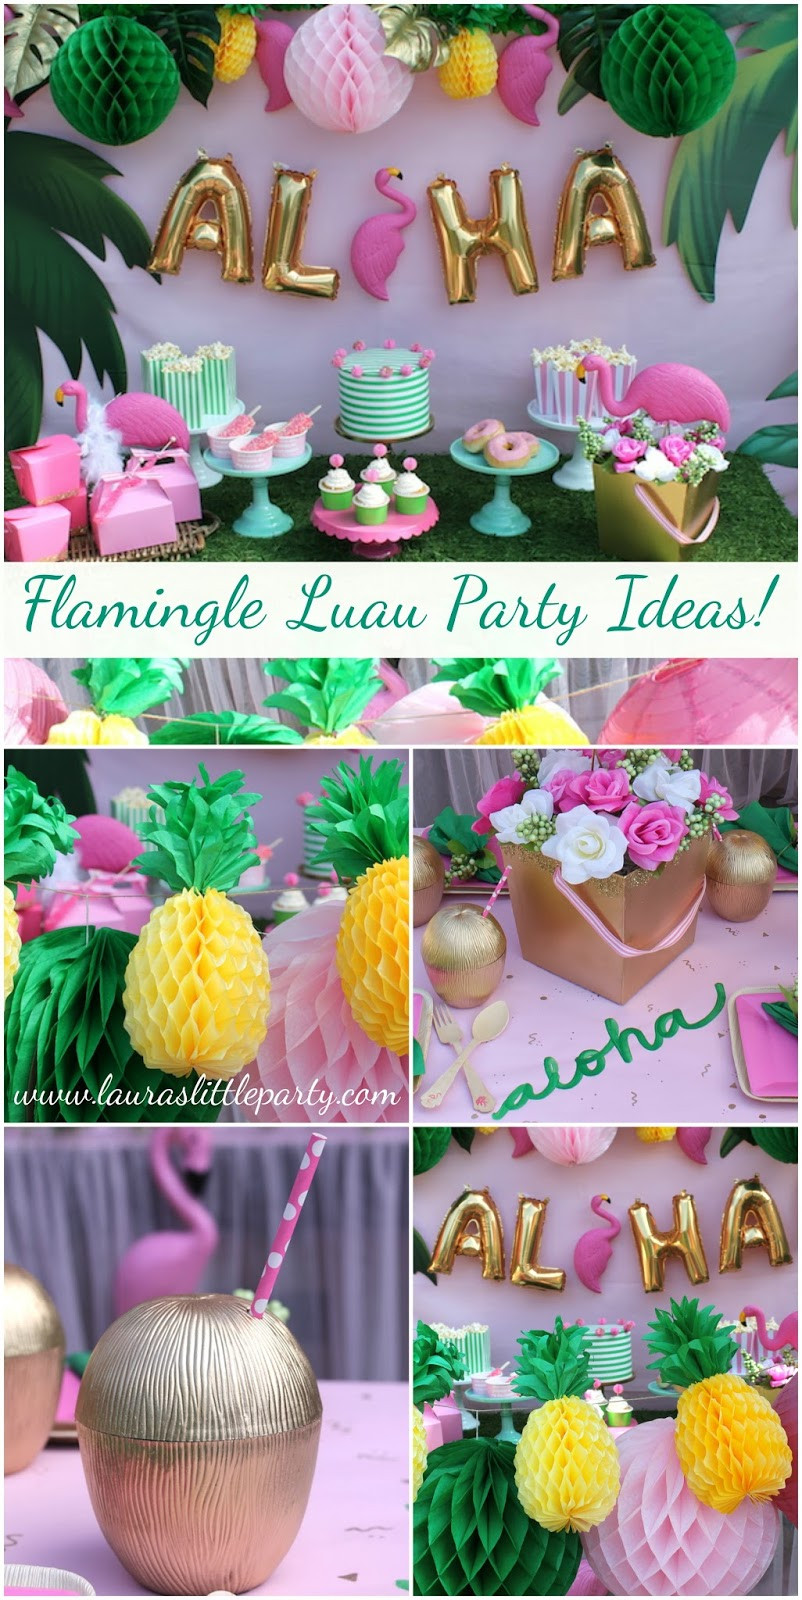 Office Party Ideas For Summer  Let s Flamingle Luau Summer Party Ideas LAURA S little